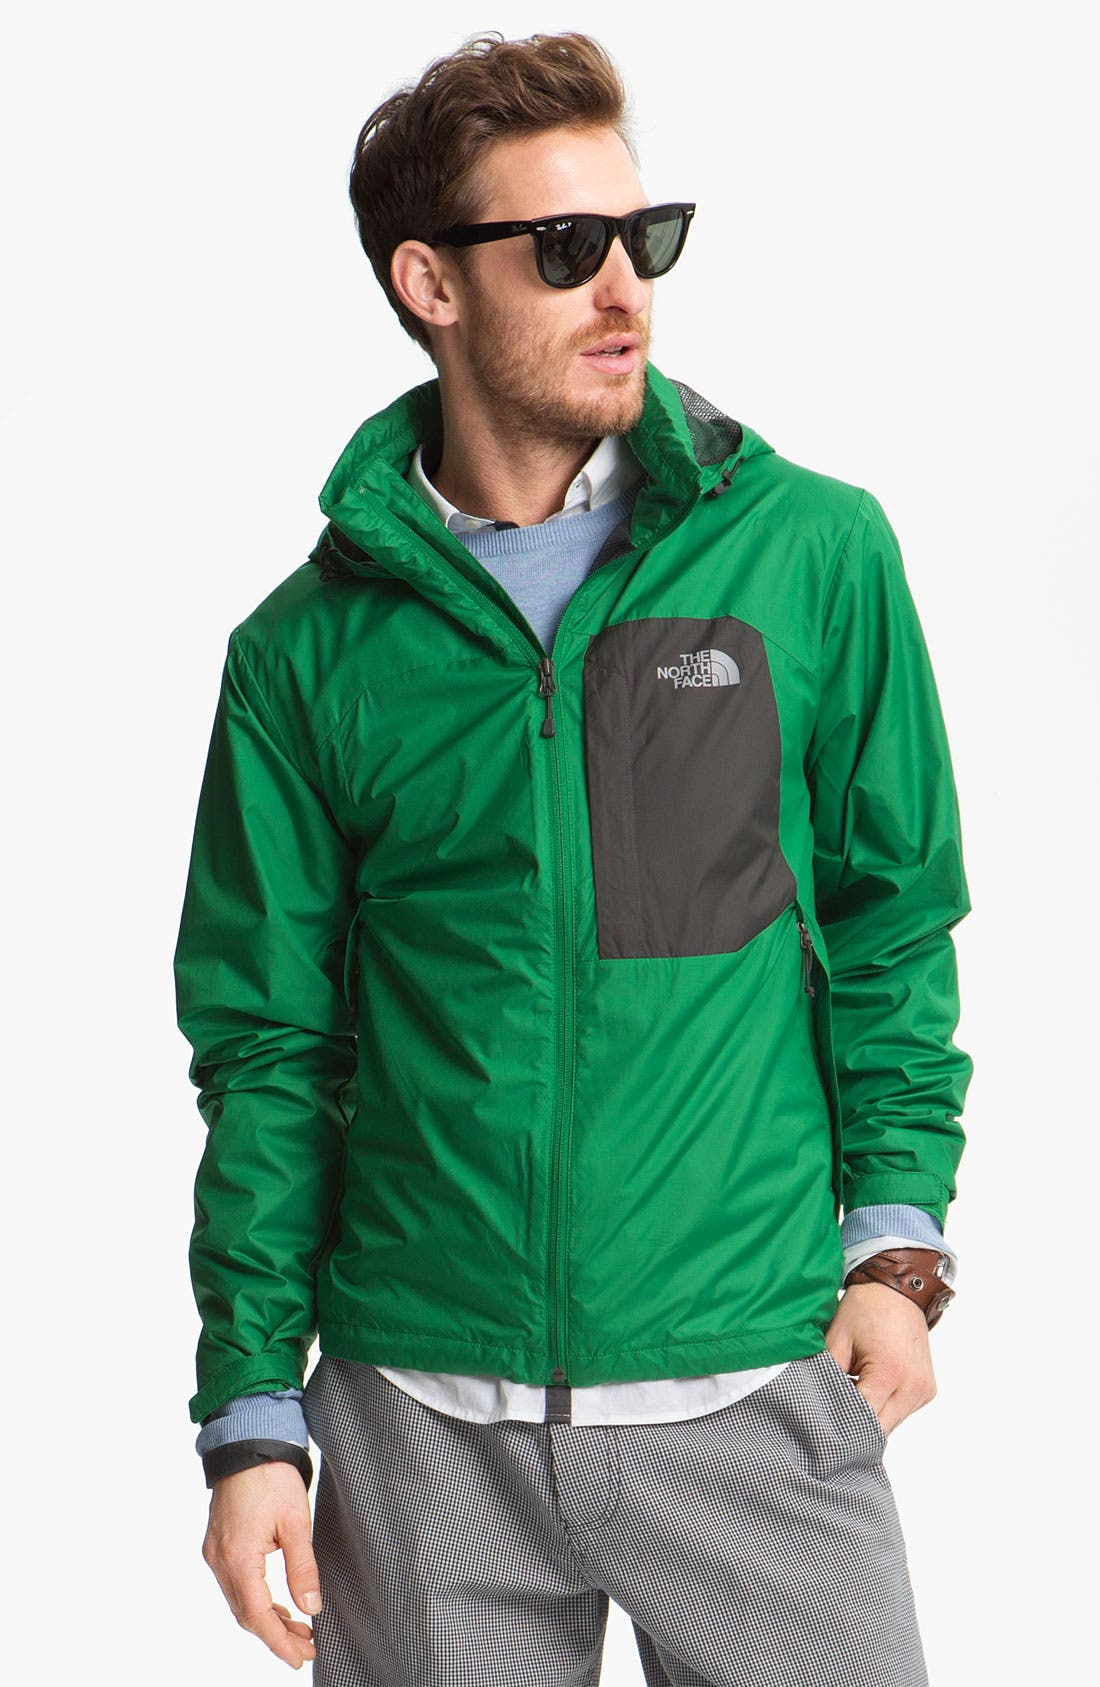 Main Image - The North Face 'Geosphere' Jacket